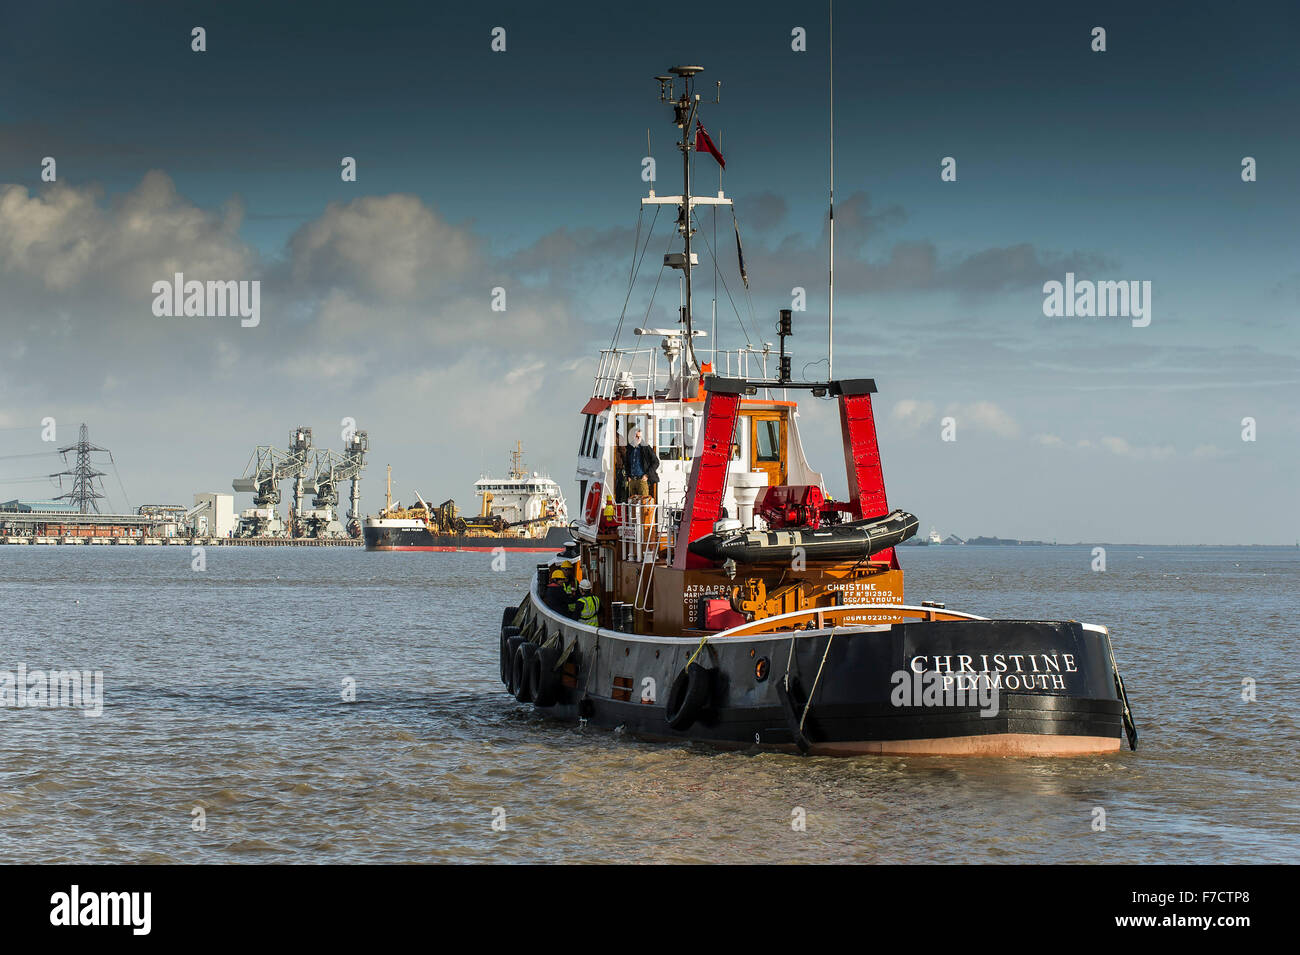 The Tug, Christine leaves Gravesend and steams out into the River Thames. - Stock Image